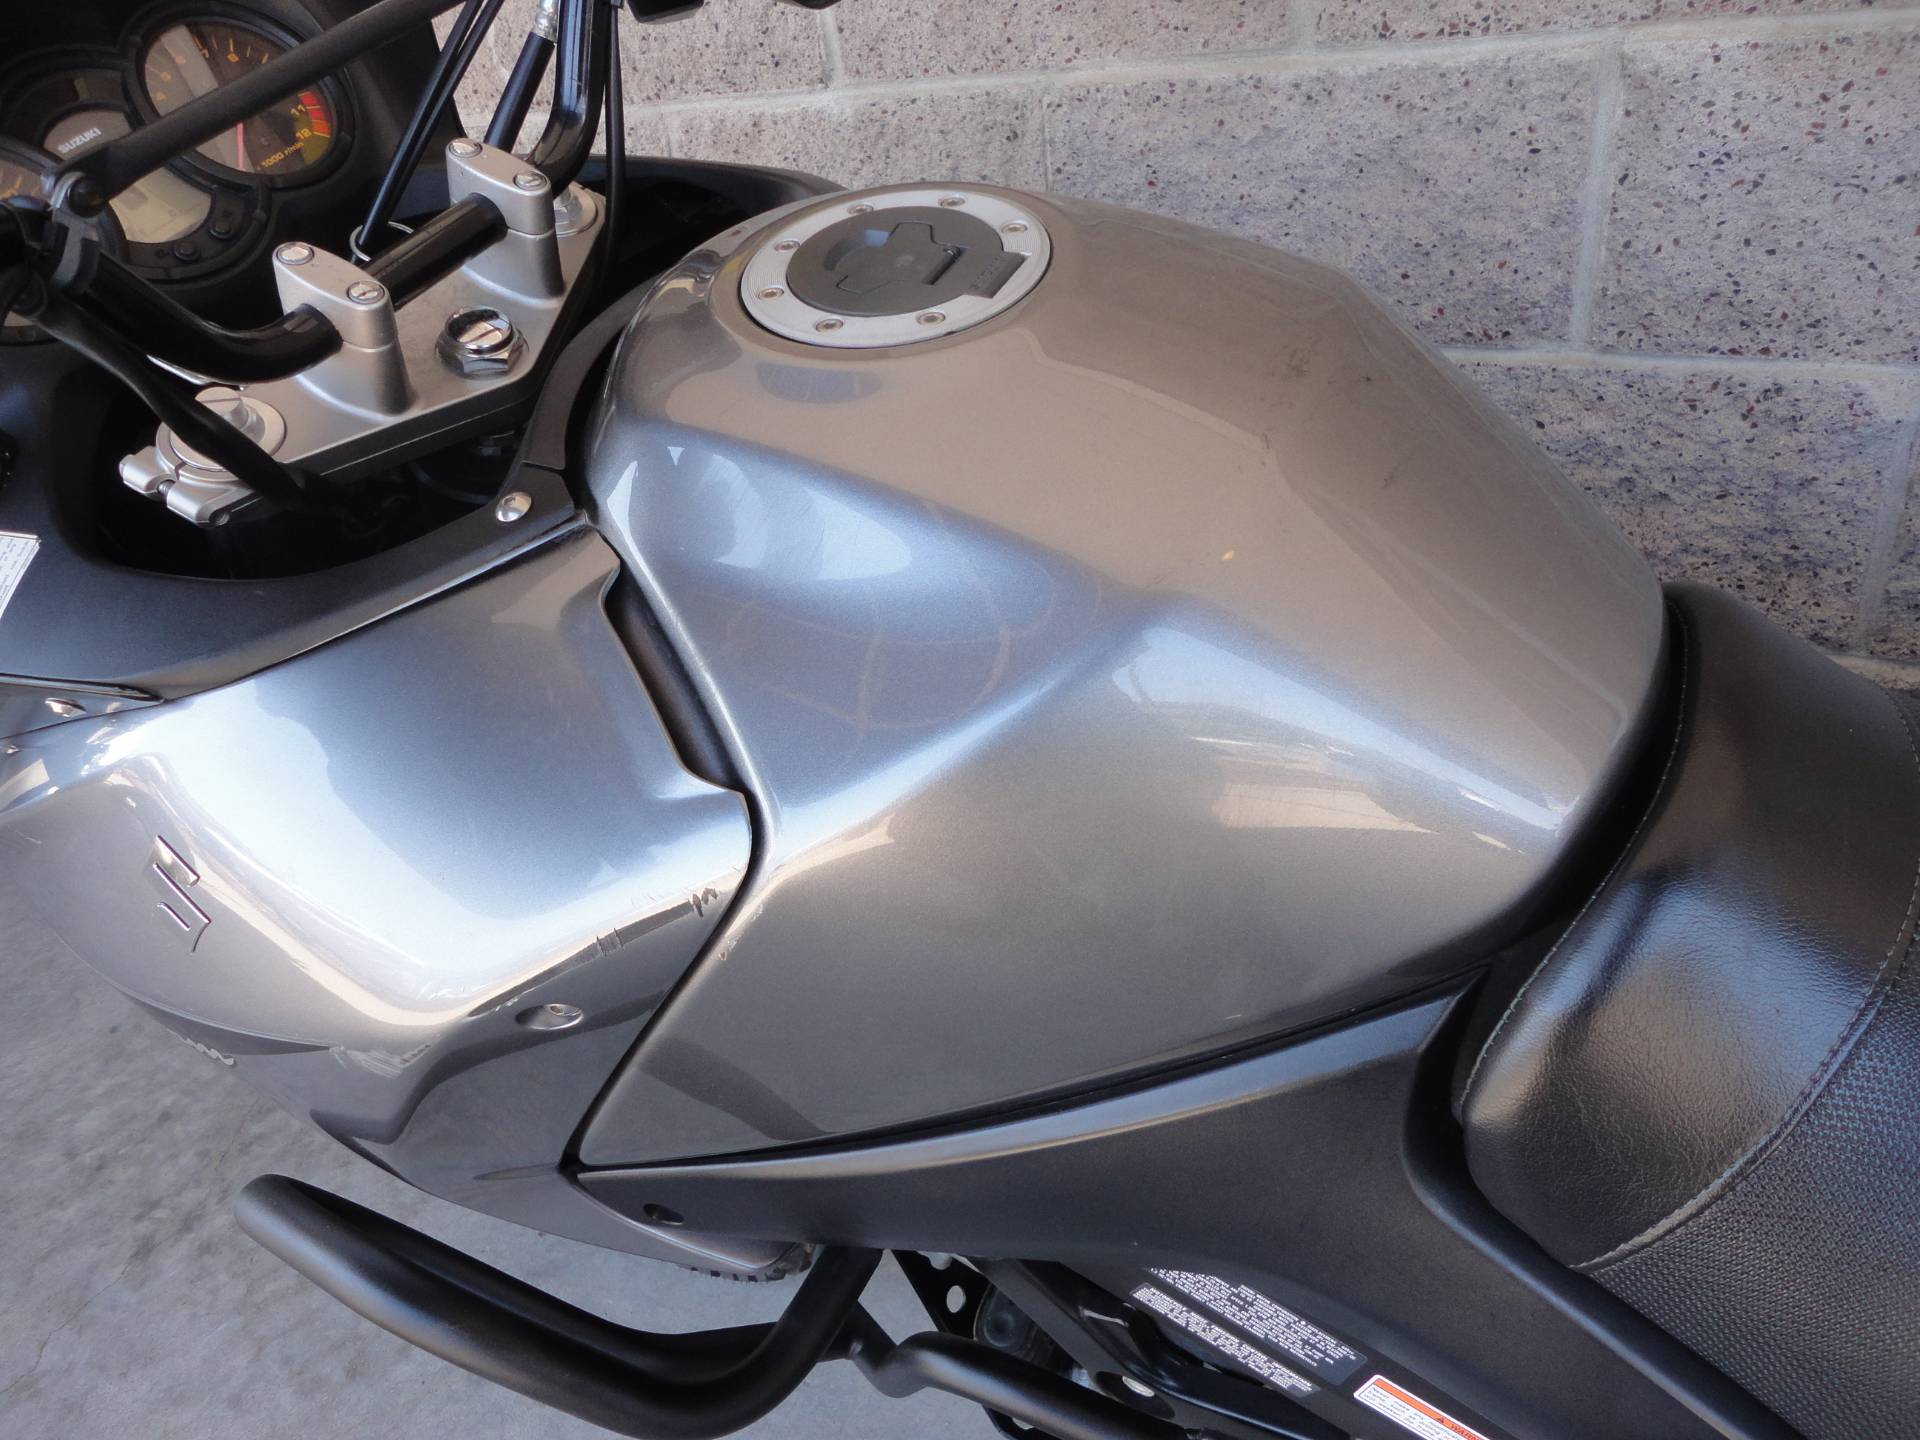 2007 Suzuki V-Strom® 650 in Denver, Colorado - Photo 10